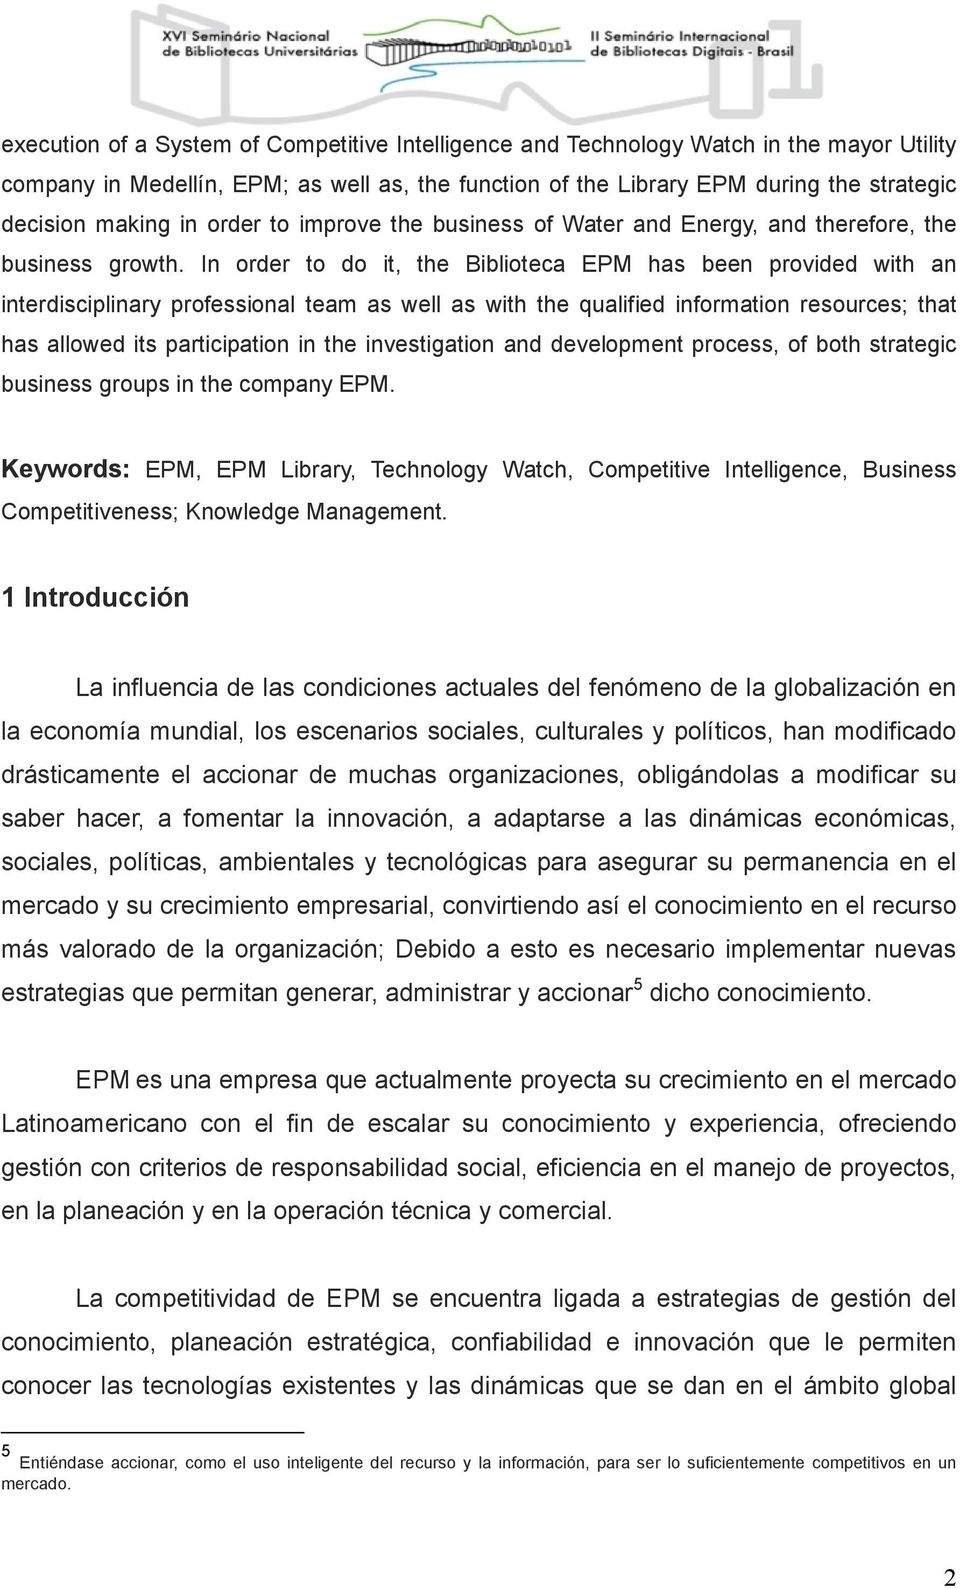 In order to do it, the Biblioteca EPM has been provided with an interdisciplinary professional team as well as with the qualified information resources; that has allowed its participation in the